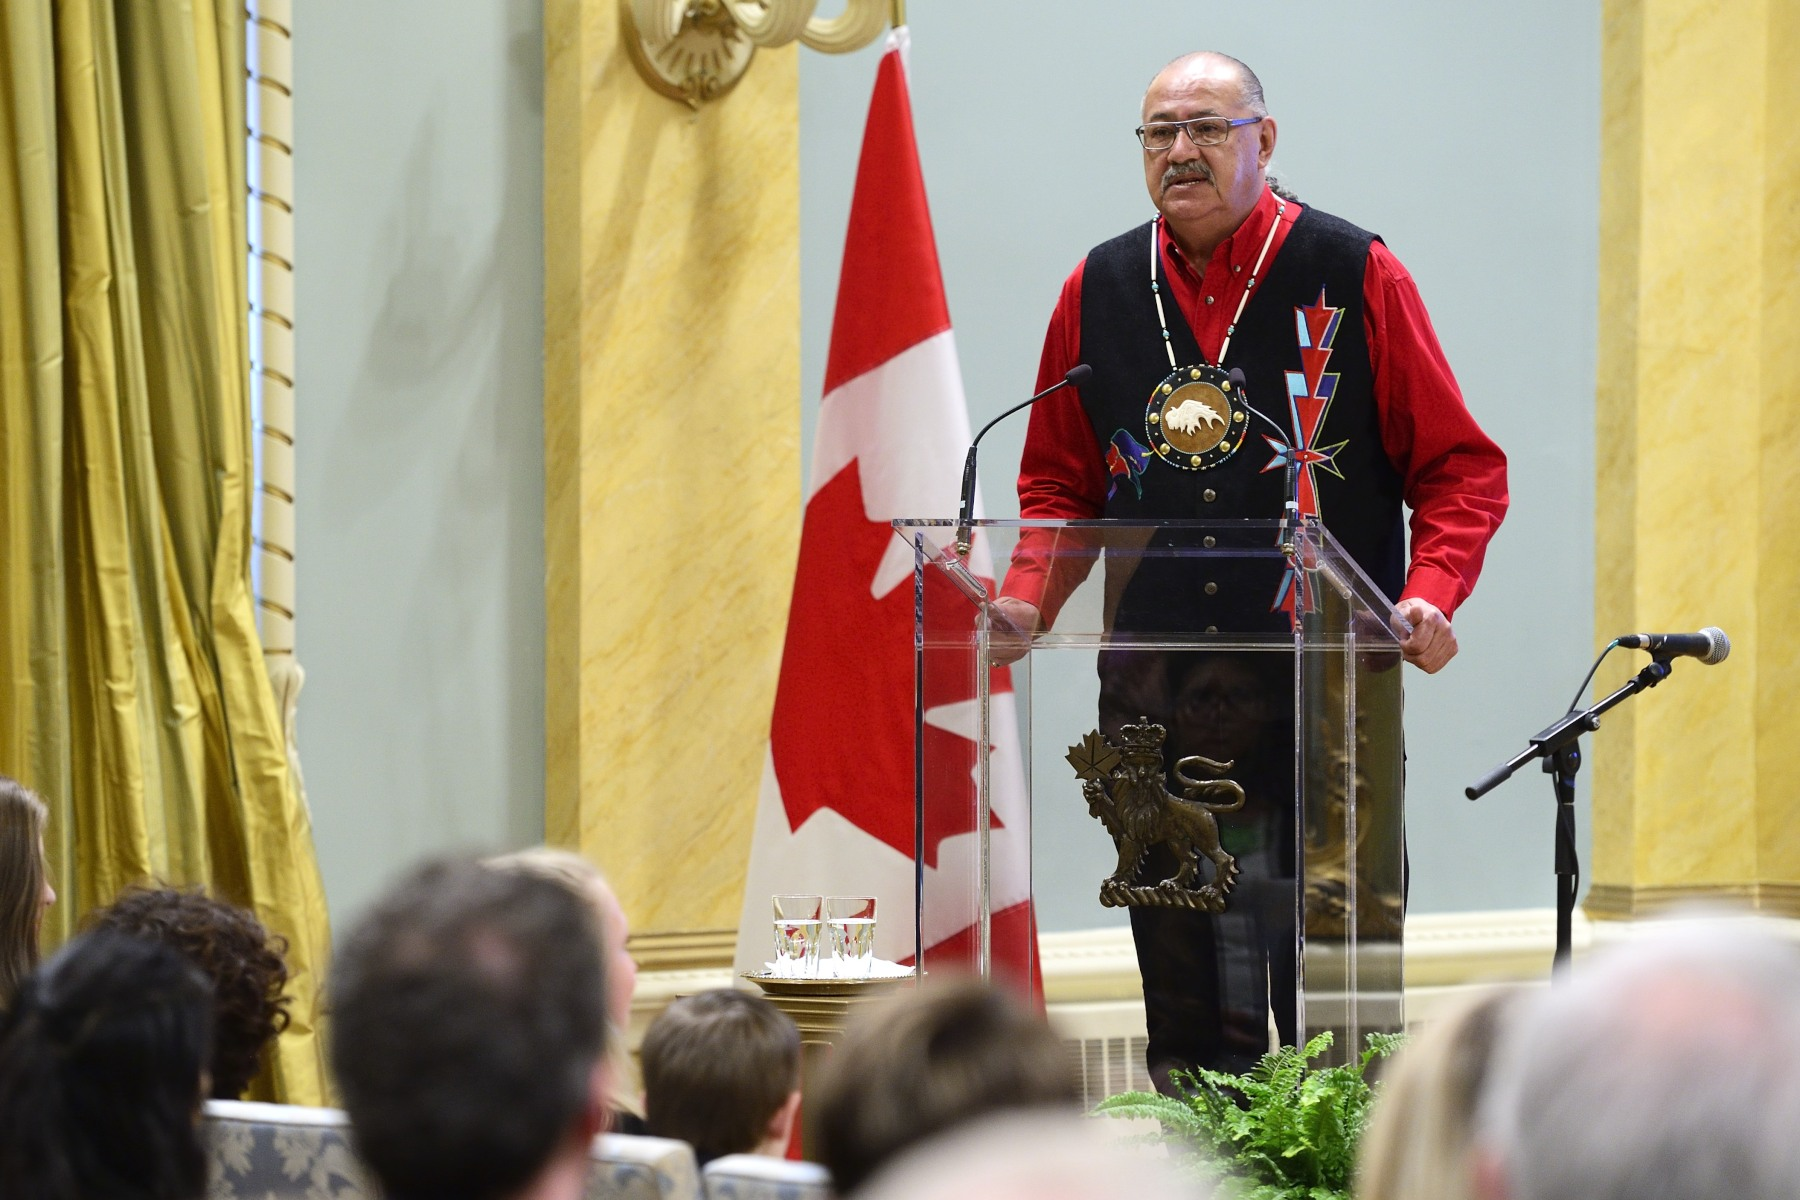 Eugène Arcand, a survivor of Indian Residential Schools, expressed his admiration for the recipients, explaining their power to teach and inspire us as we navigate the road of reconciliation.